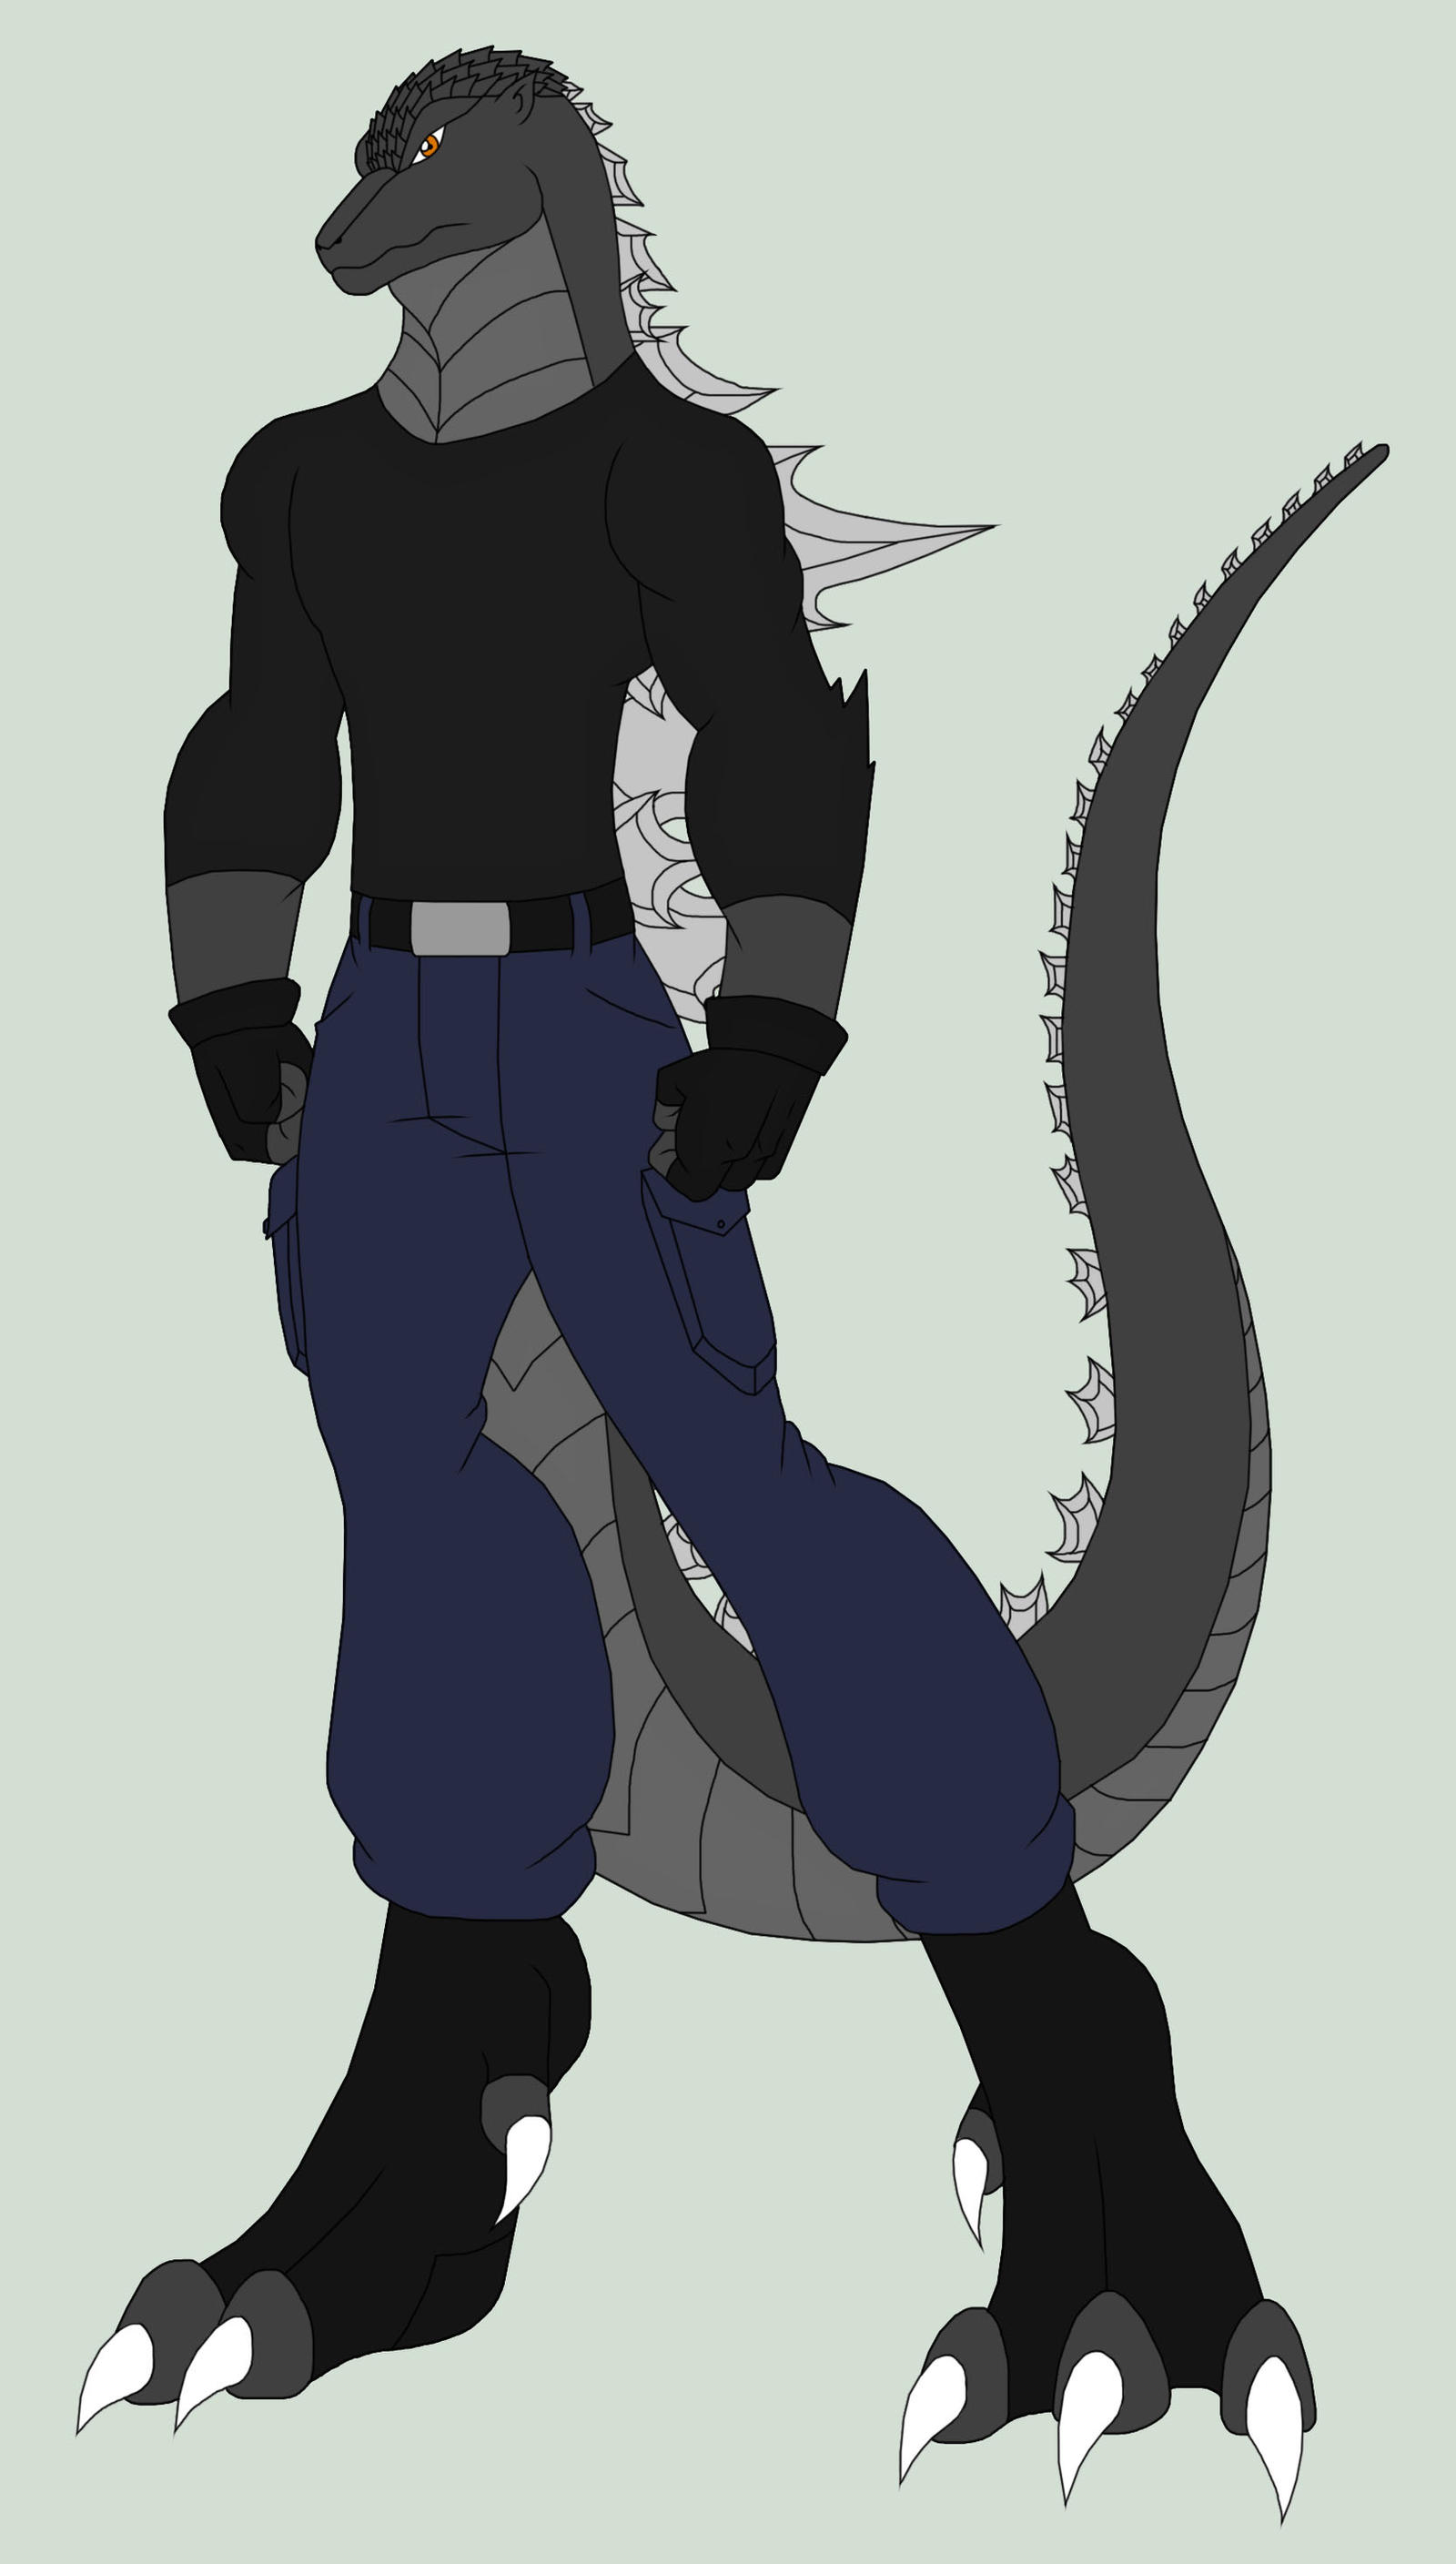 Godzilla Anthro by Pyrus-Leonidas